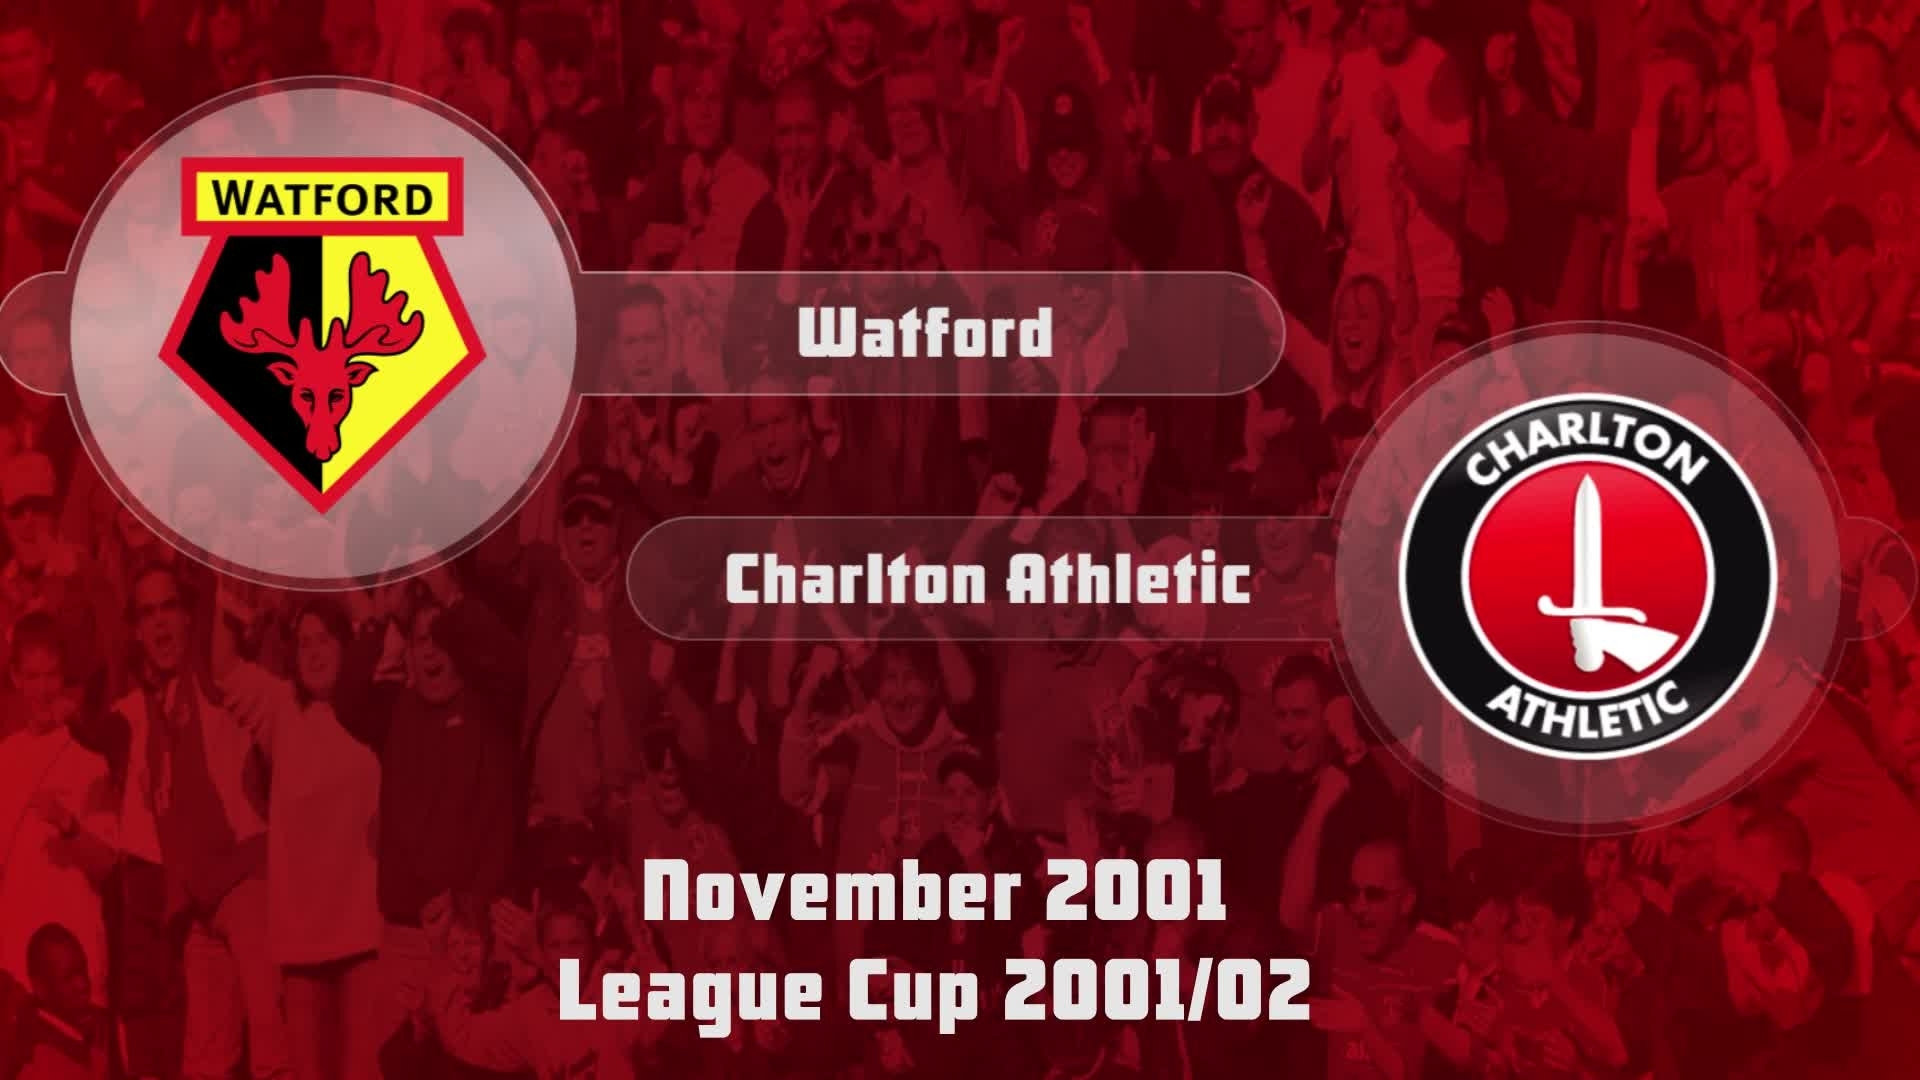 16 HIGHLIGHTS | Watford 3 Charlton 2 (League Cup Nov 2001)